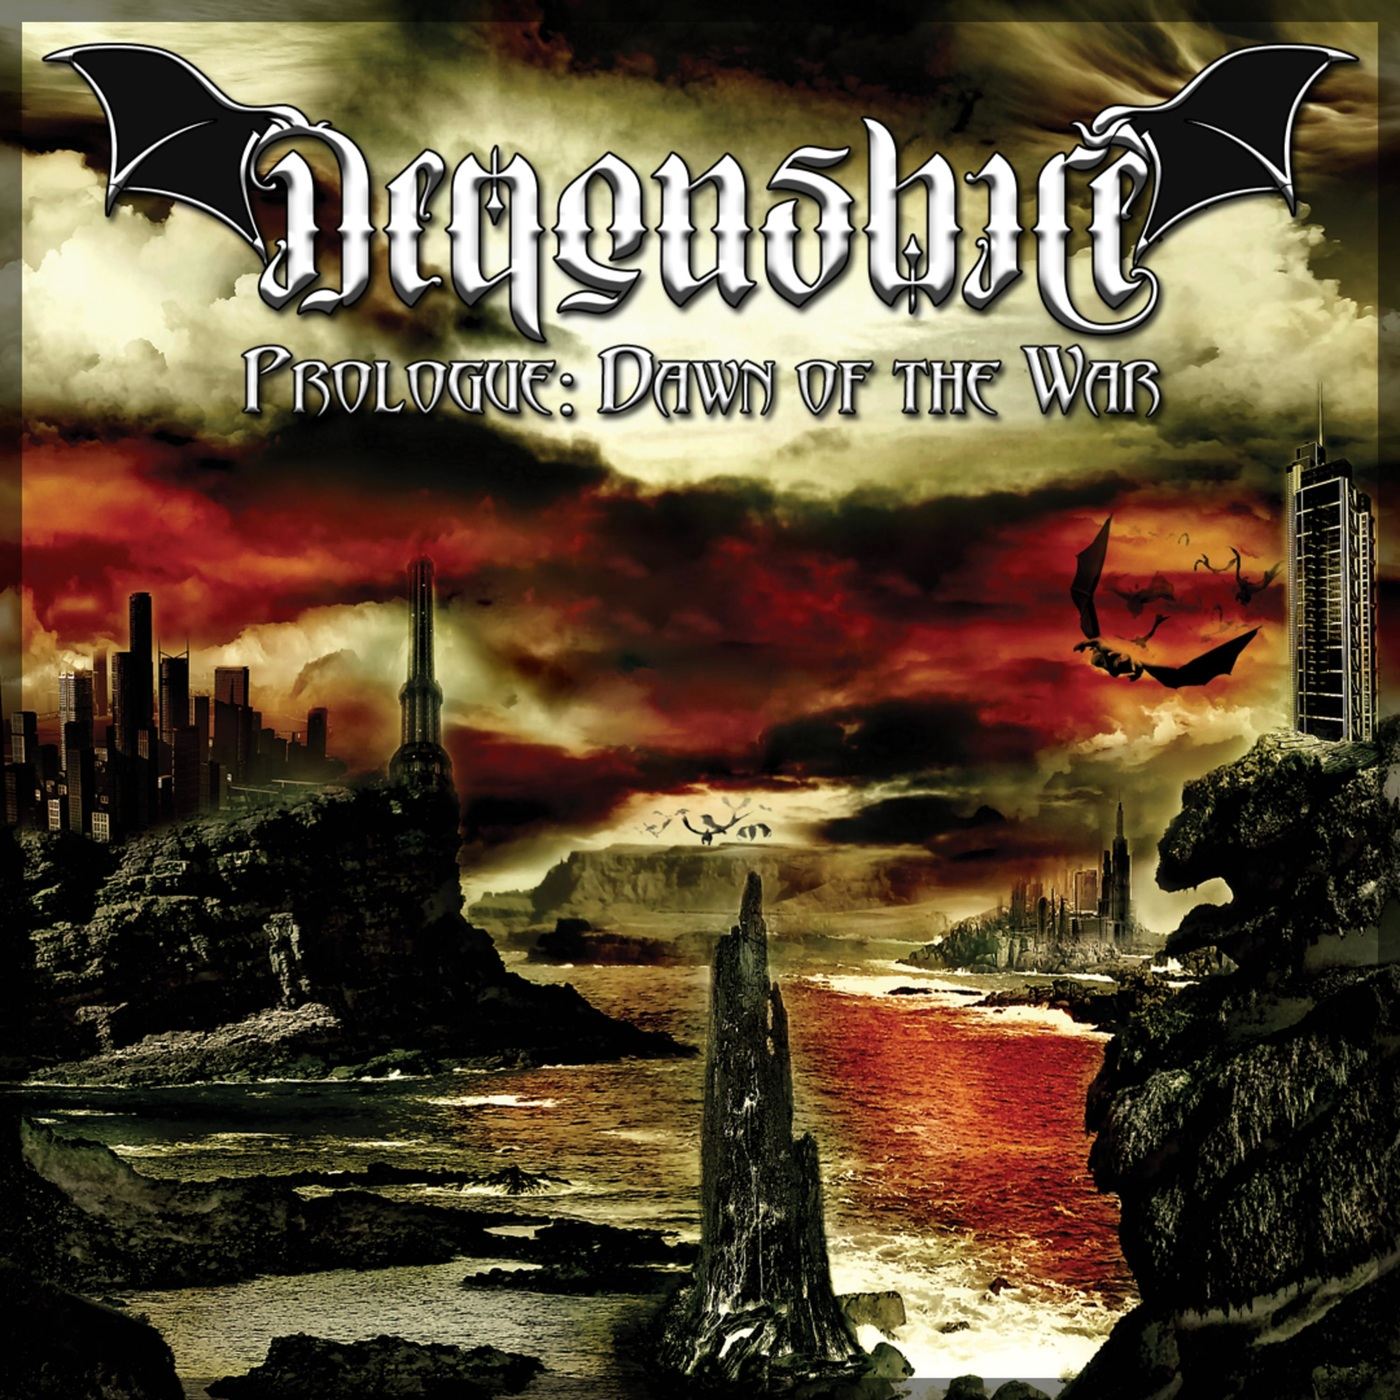 Demonshire - Prologue Dawn Of The War